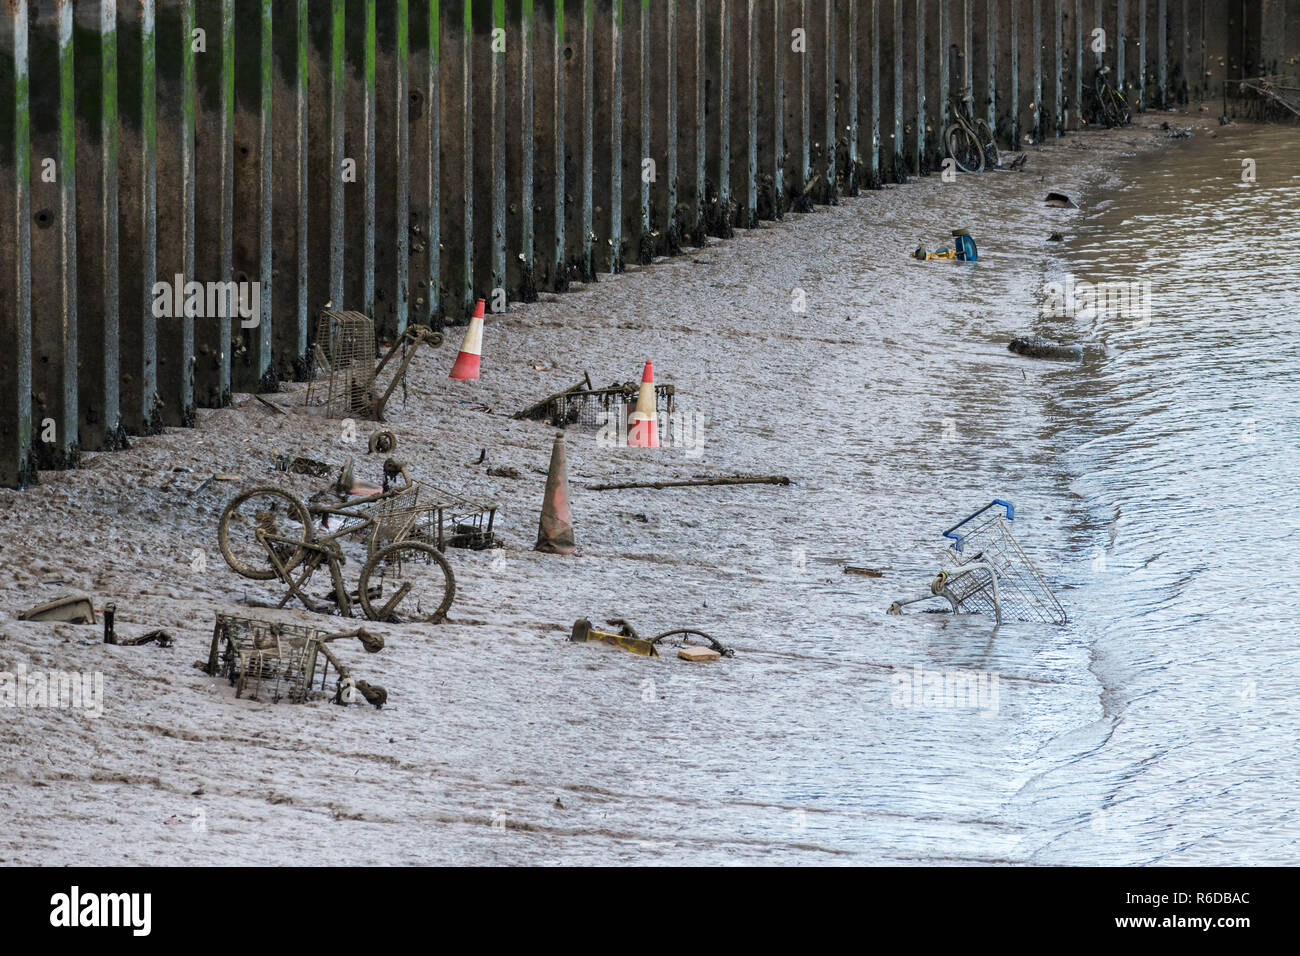 Shopping trolleys, bicycles and other items thrown into a tidal river are being covered over by mud and silt, depicting littering and environment harm - Stock Image